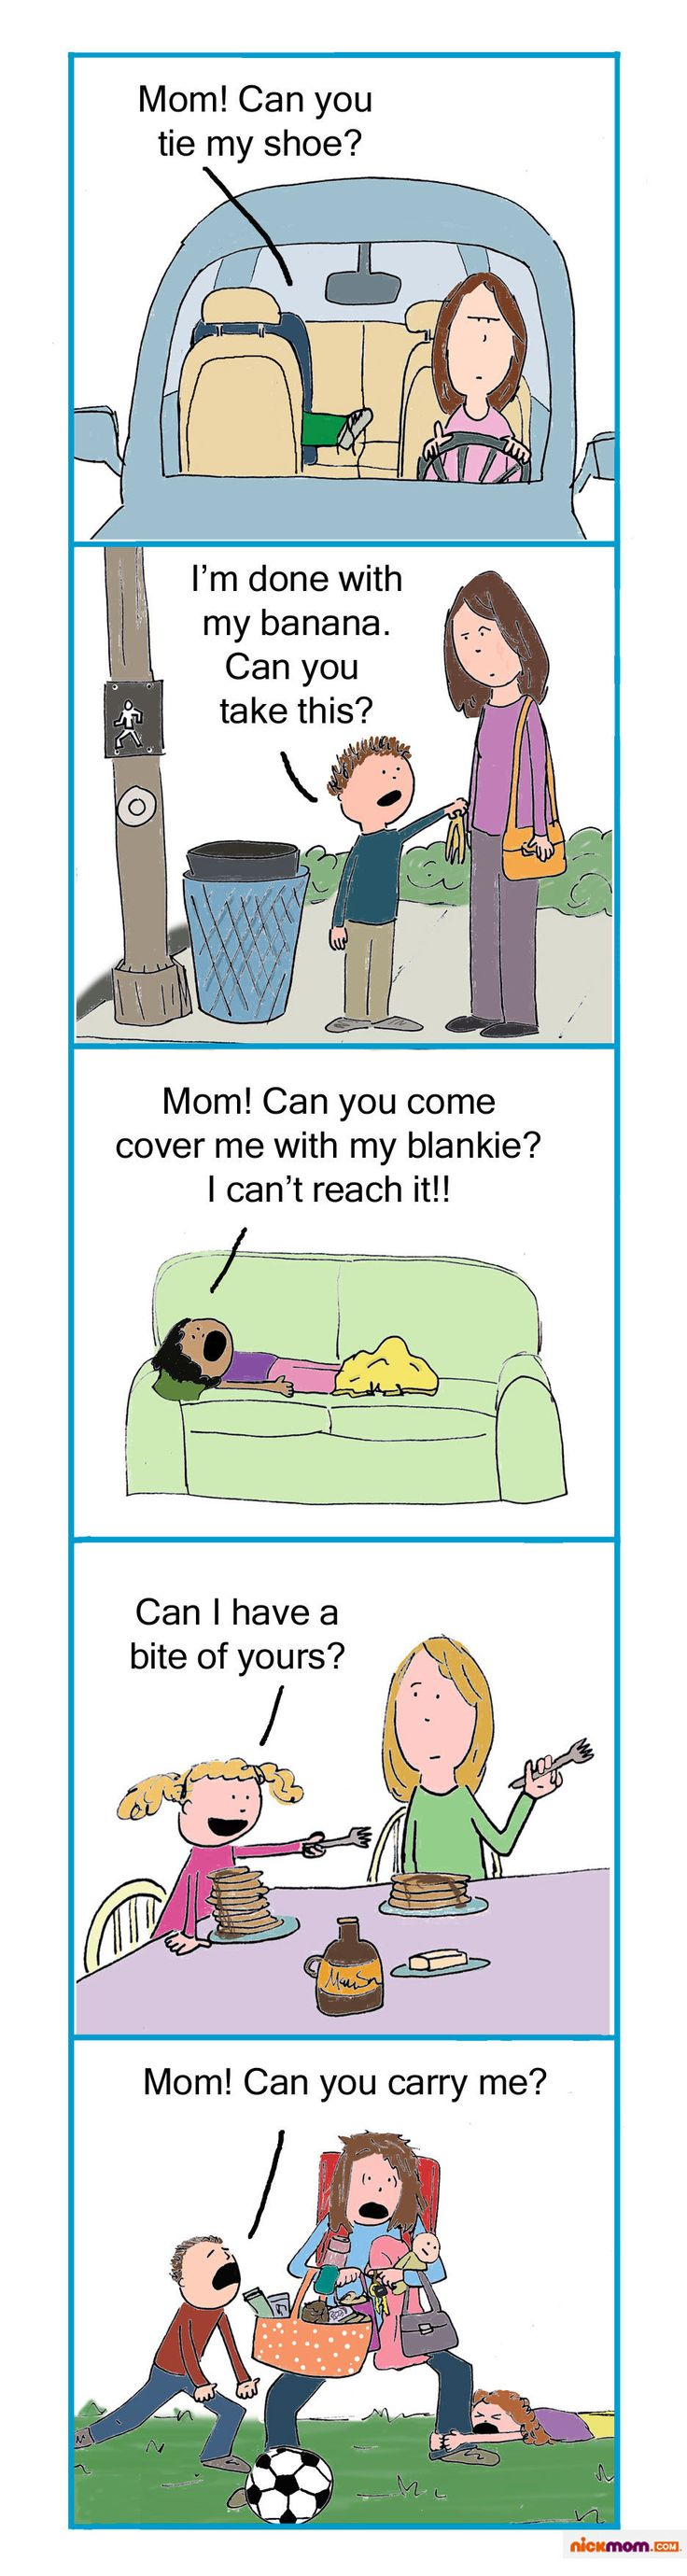 Are You Seriously Asking Me That? Seriously?   More LOLs & Funny Stuff for Moms   NickMom